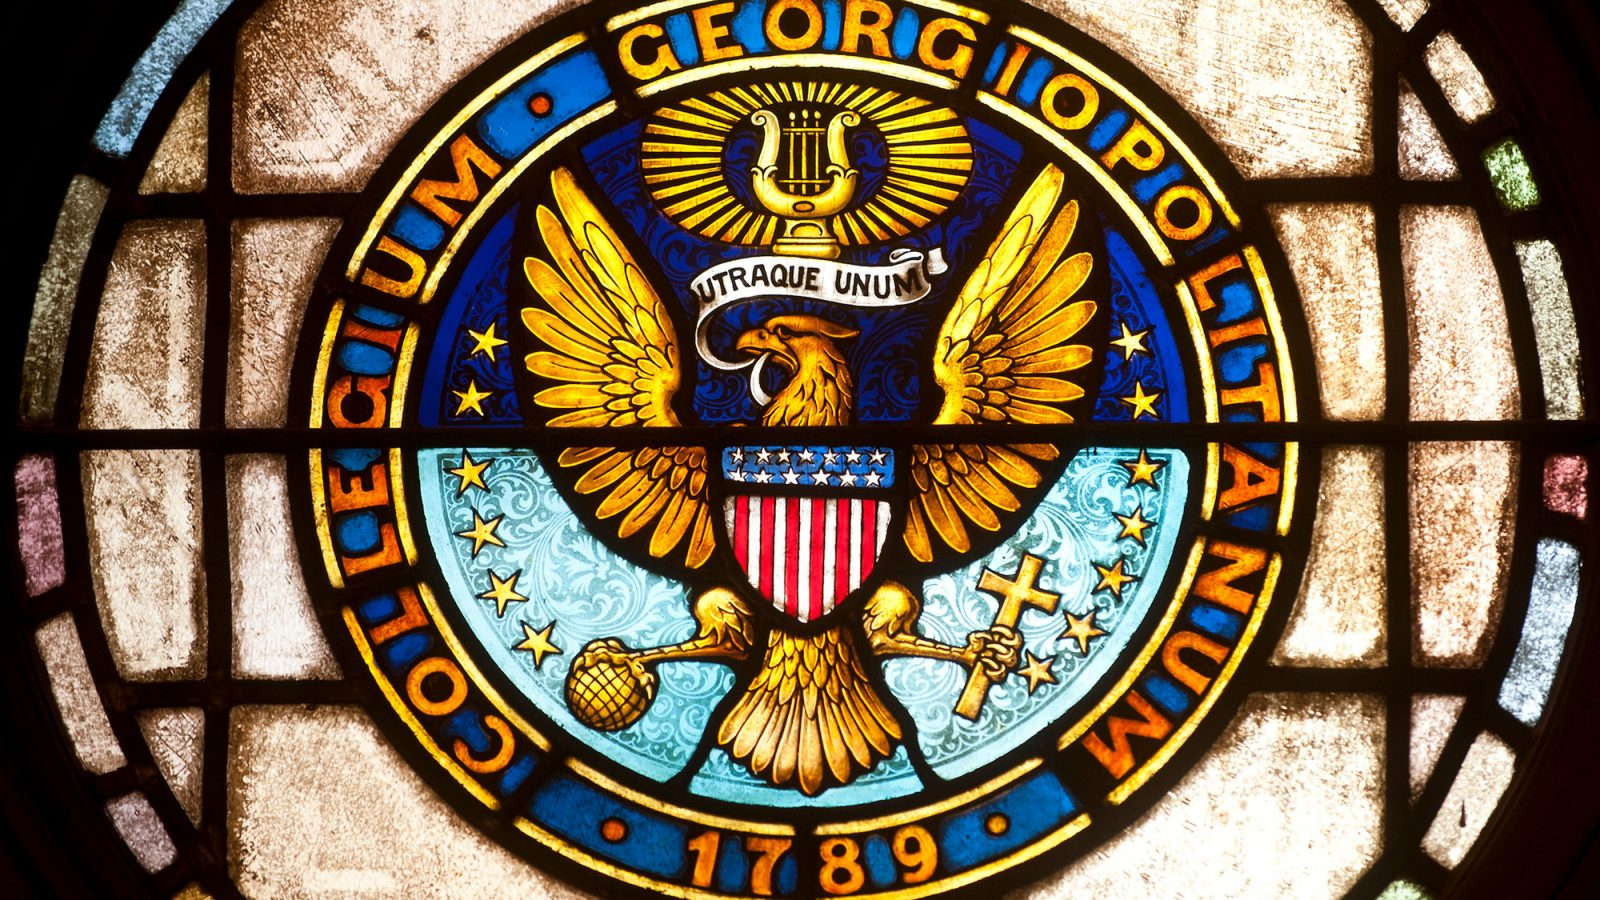 The Georgetown seal rendered in stained glass